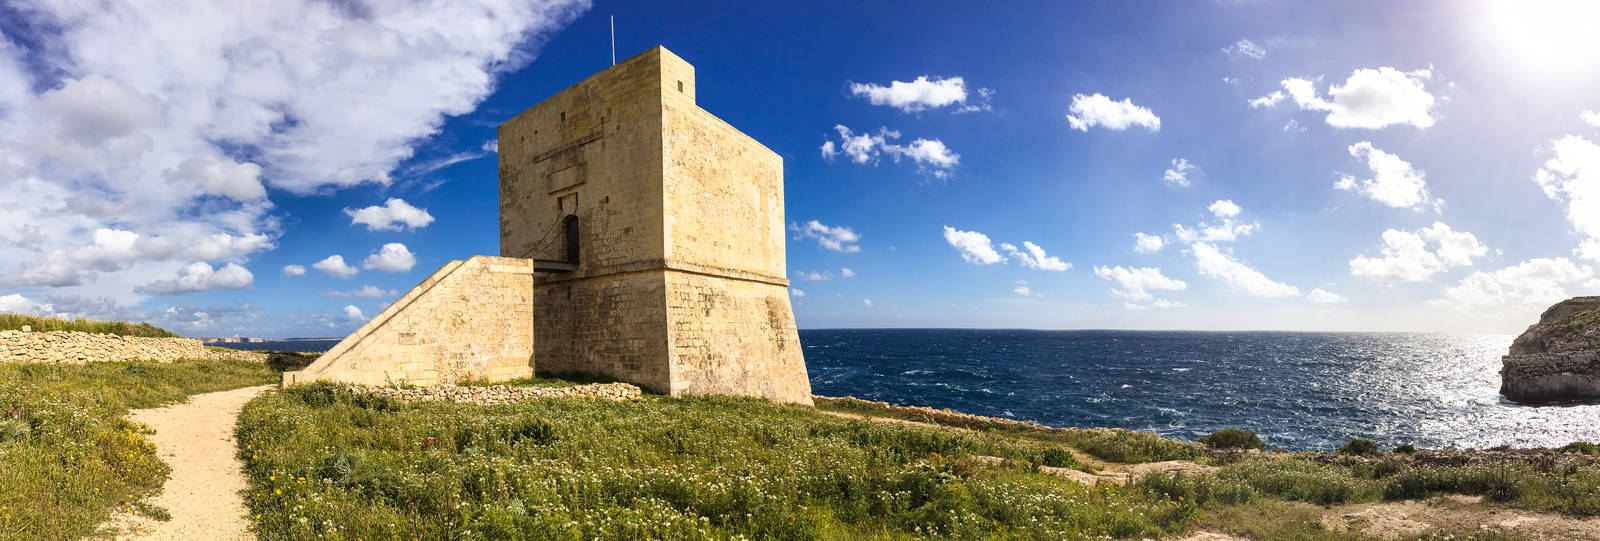 Panorama of the Mgarr ix-Xini tower